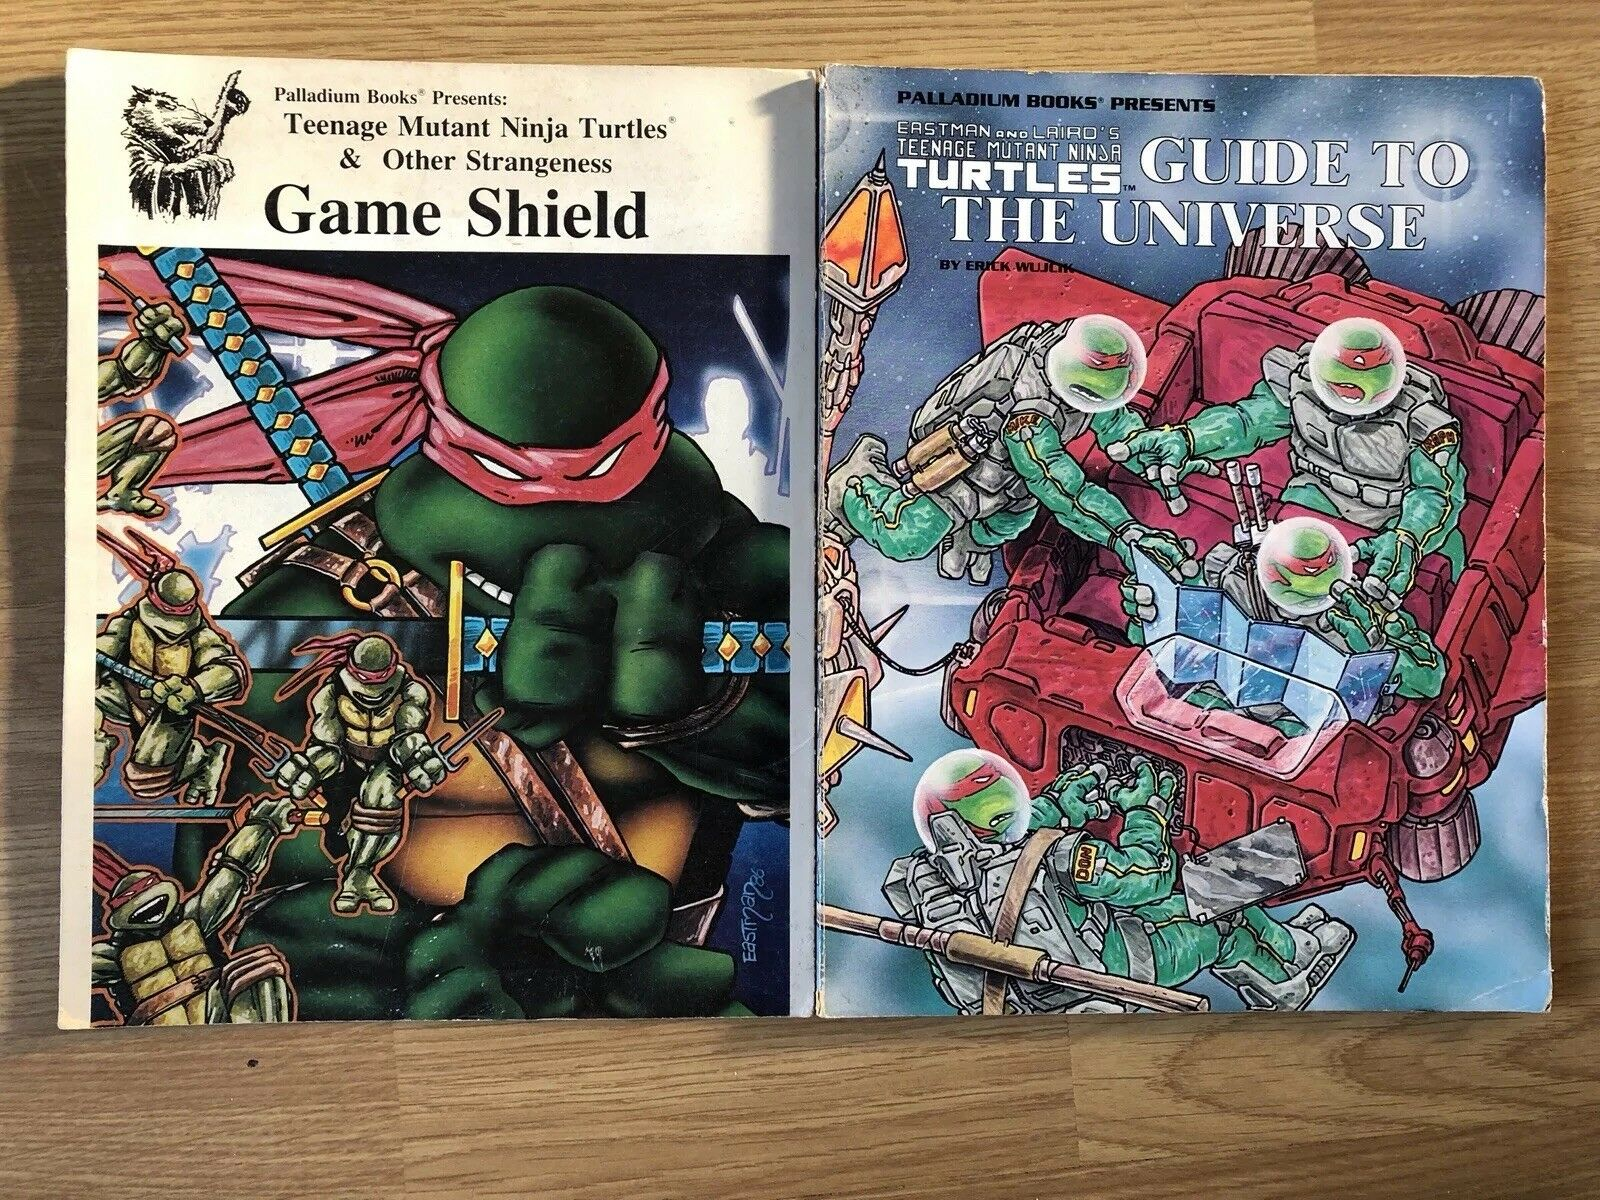 Teenage Mutant Ninja Turtles Game Shield Palladium & Guide to the universe books